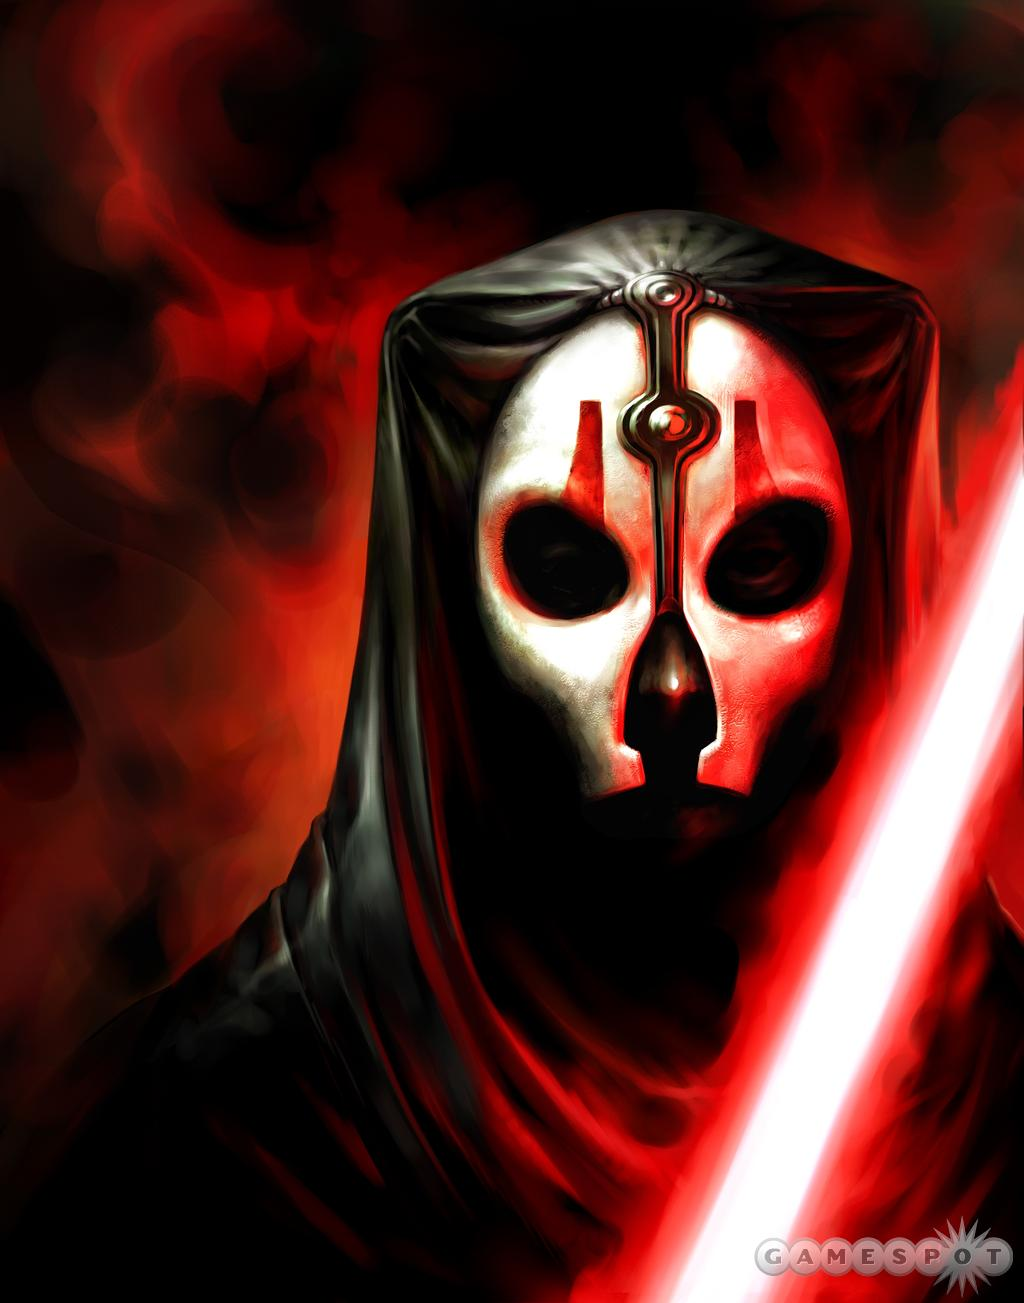 Set five years after the original game, The Sith Lords sees the galaxy once again threatened by those diabolical masters of the dark side.